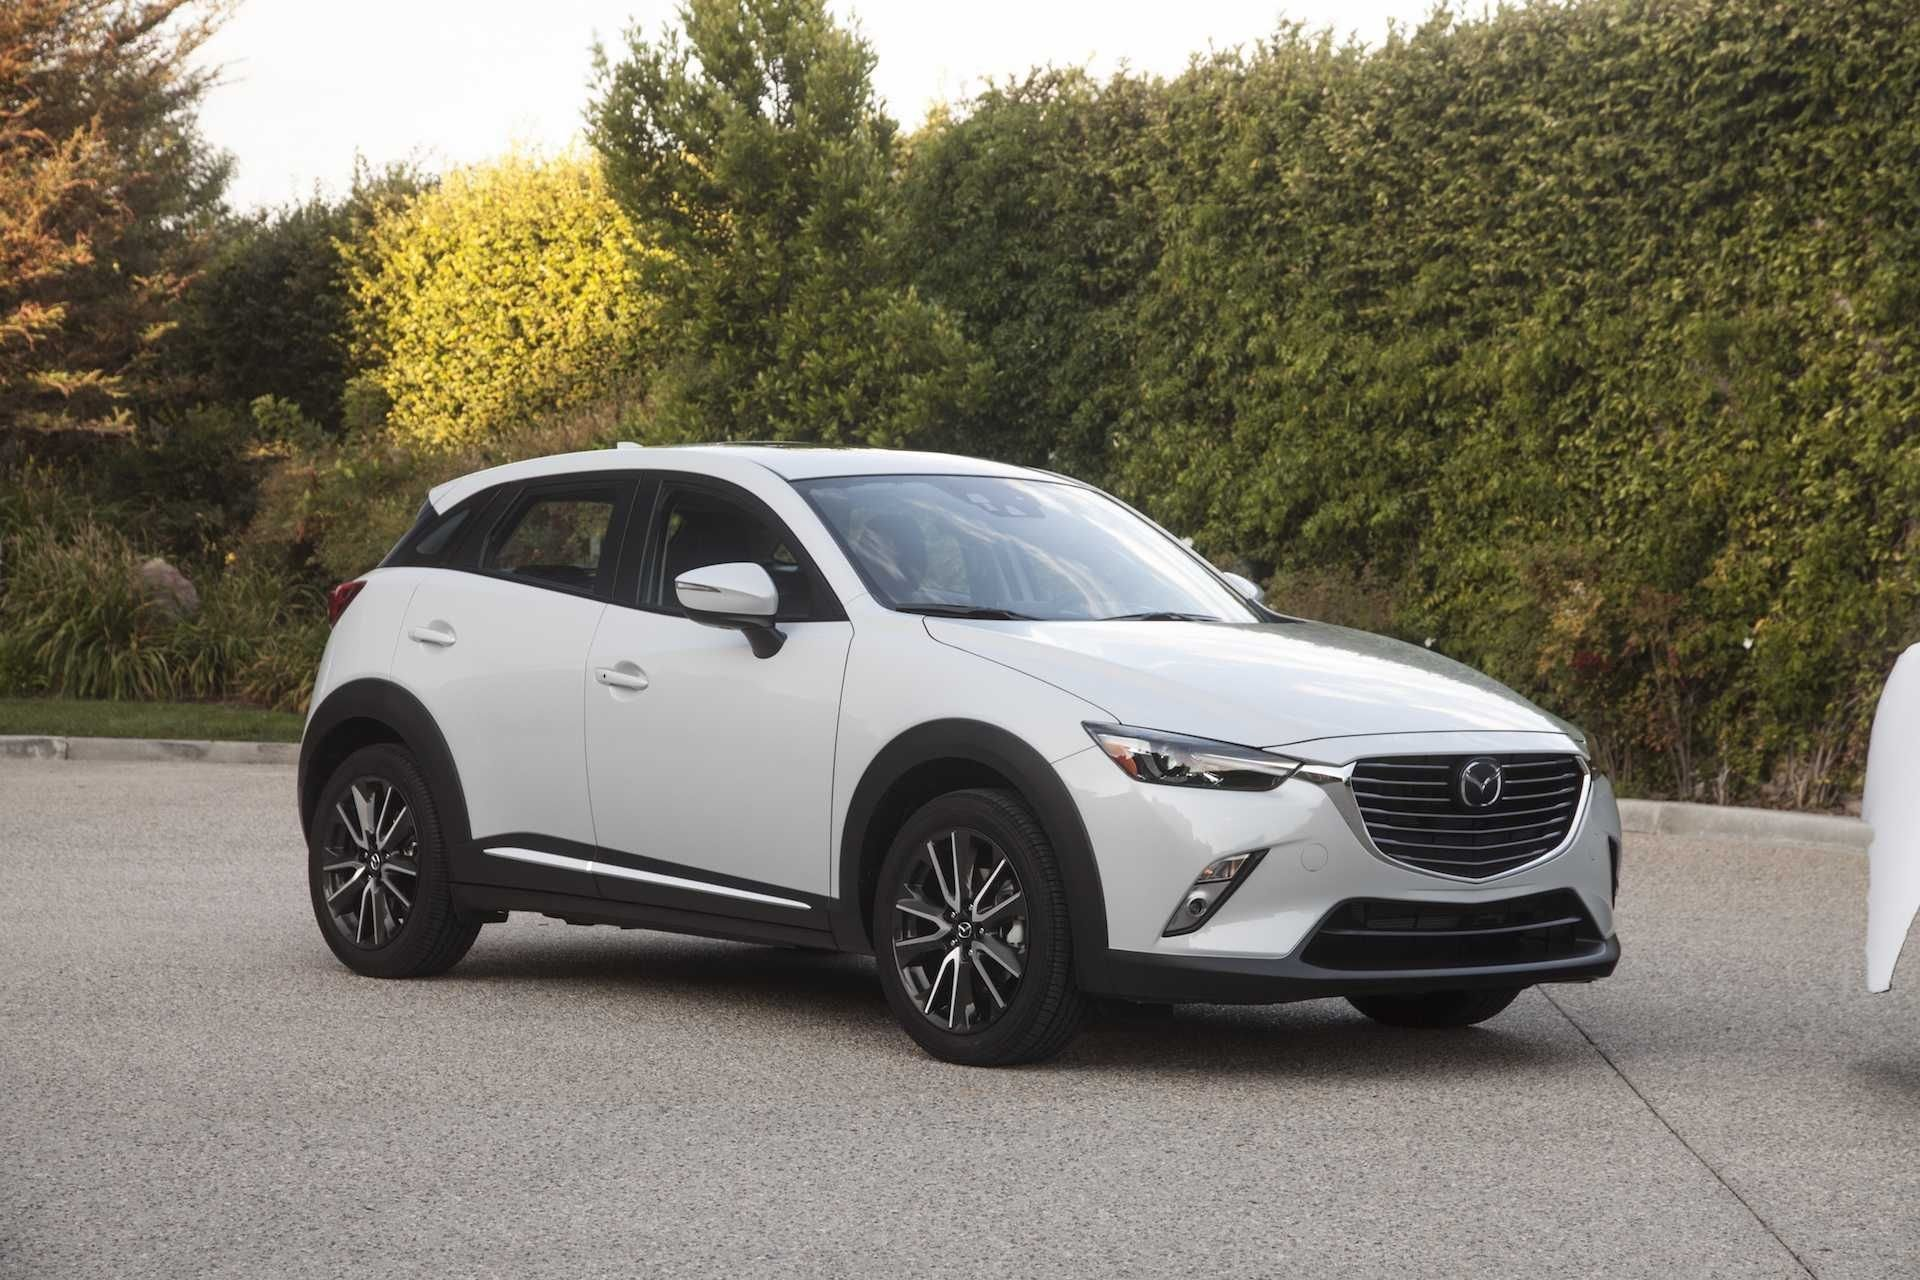 New 2019 Mazda-CX-3 Grand Touring CX-3 Grand Touring for sale $27,145 at M and V Leasing in Brooklyn NY 11223 1